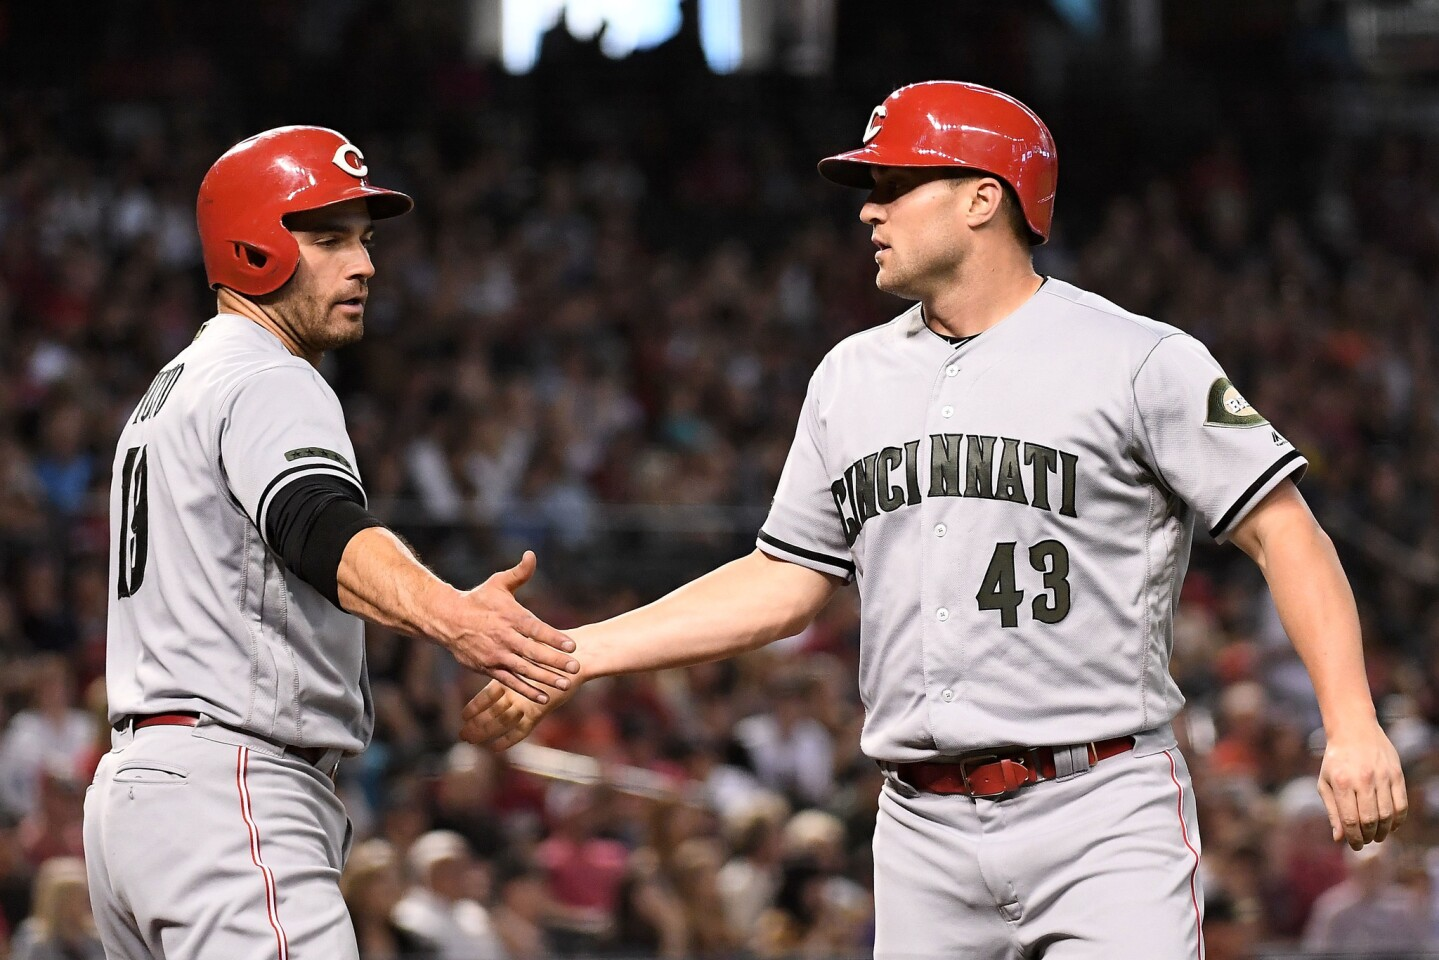 PHOENIX, AZ - MAY 28: Scott Schebler #43 of the Cincinnati Reds is congratulated by Joey Votto #19 after scoring against the Arizona Diamondbacks in the fifth inning of the MLB game at Chase Field on May 28, 2018 in Phoenix, Arizona. MLB players across the league are wearing special uniforms to commemorate Memorial Day. (Photo by Jennifer Stewart/Getty Images) ** OUTS - ELSENT, FPG, CM - OUTS * NM, PH, VA if sourced by CT, LA or MoD **